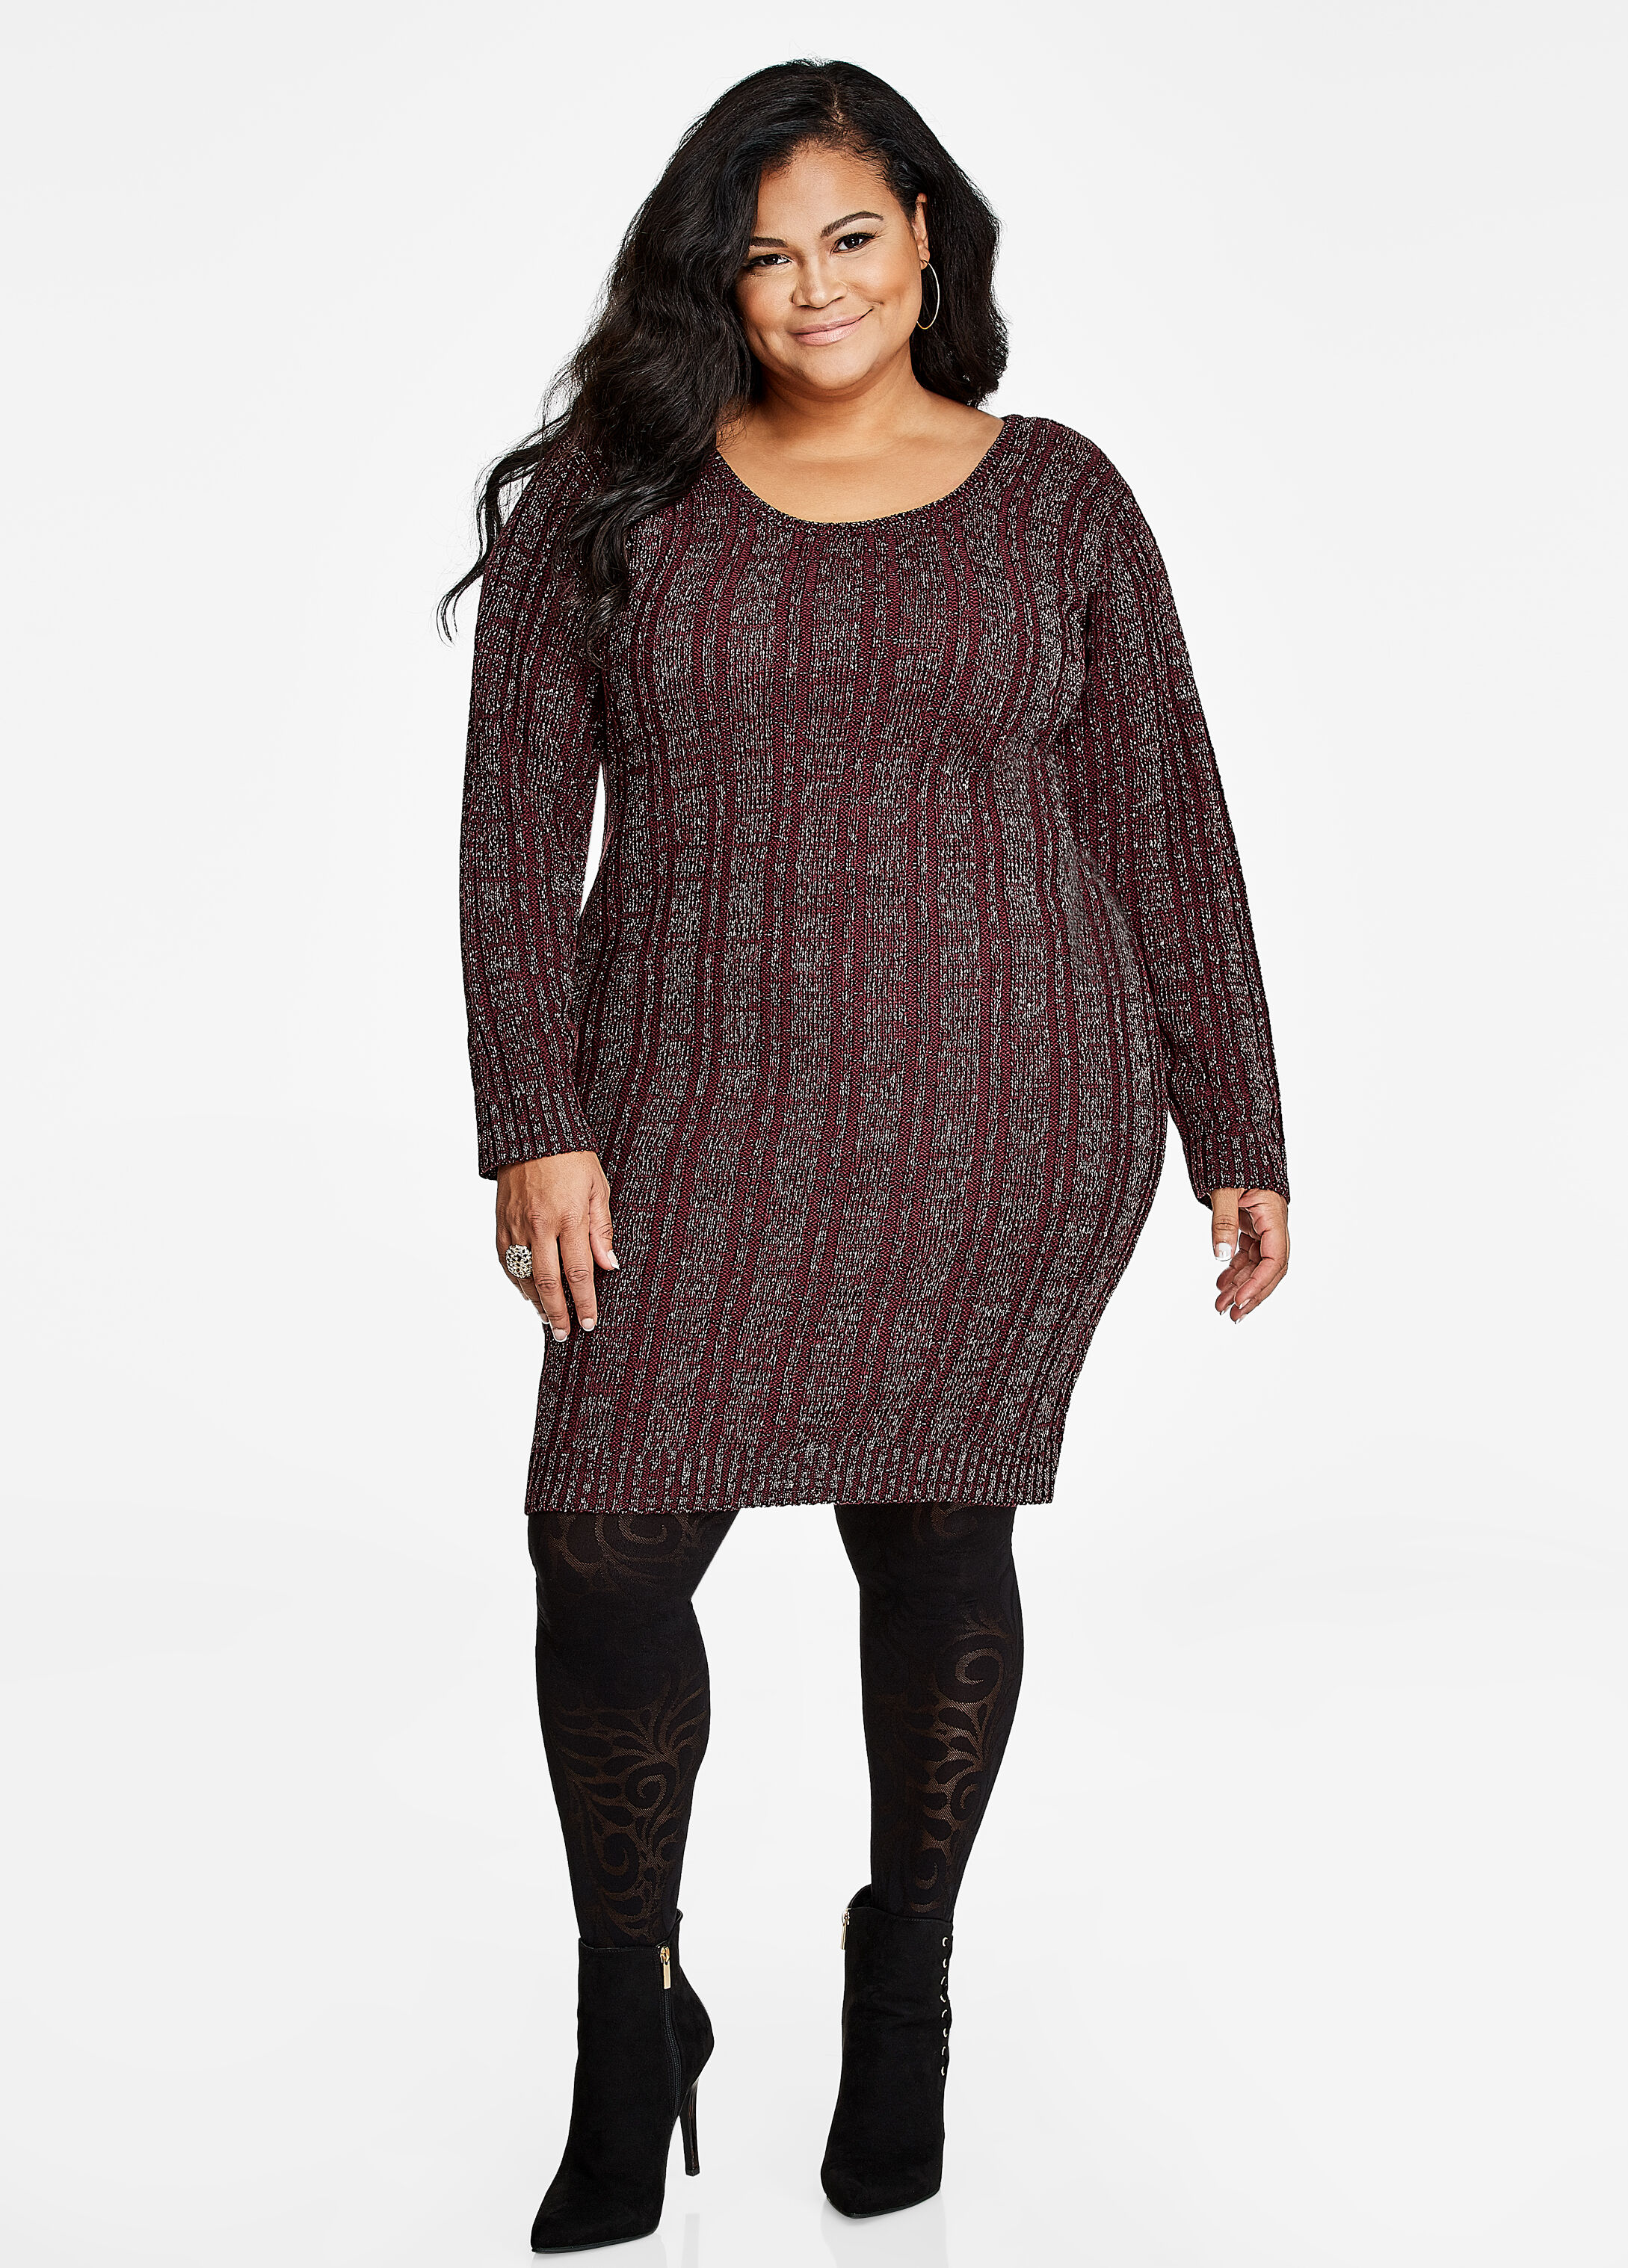 Ribbed Lace Up Back Sweater Dress Italian Plum - Sweater Dresses